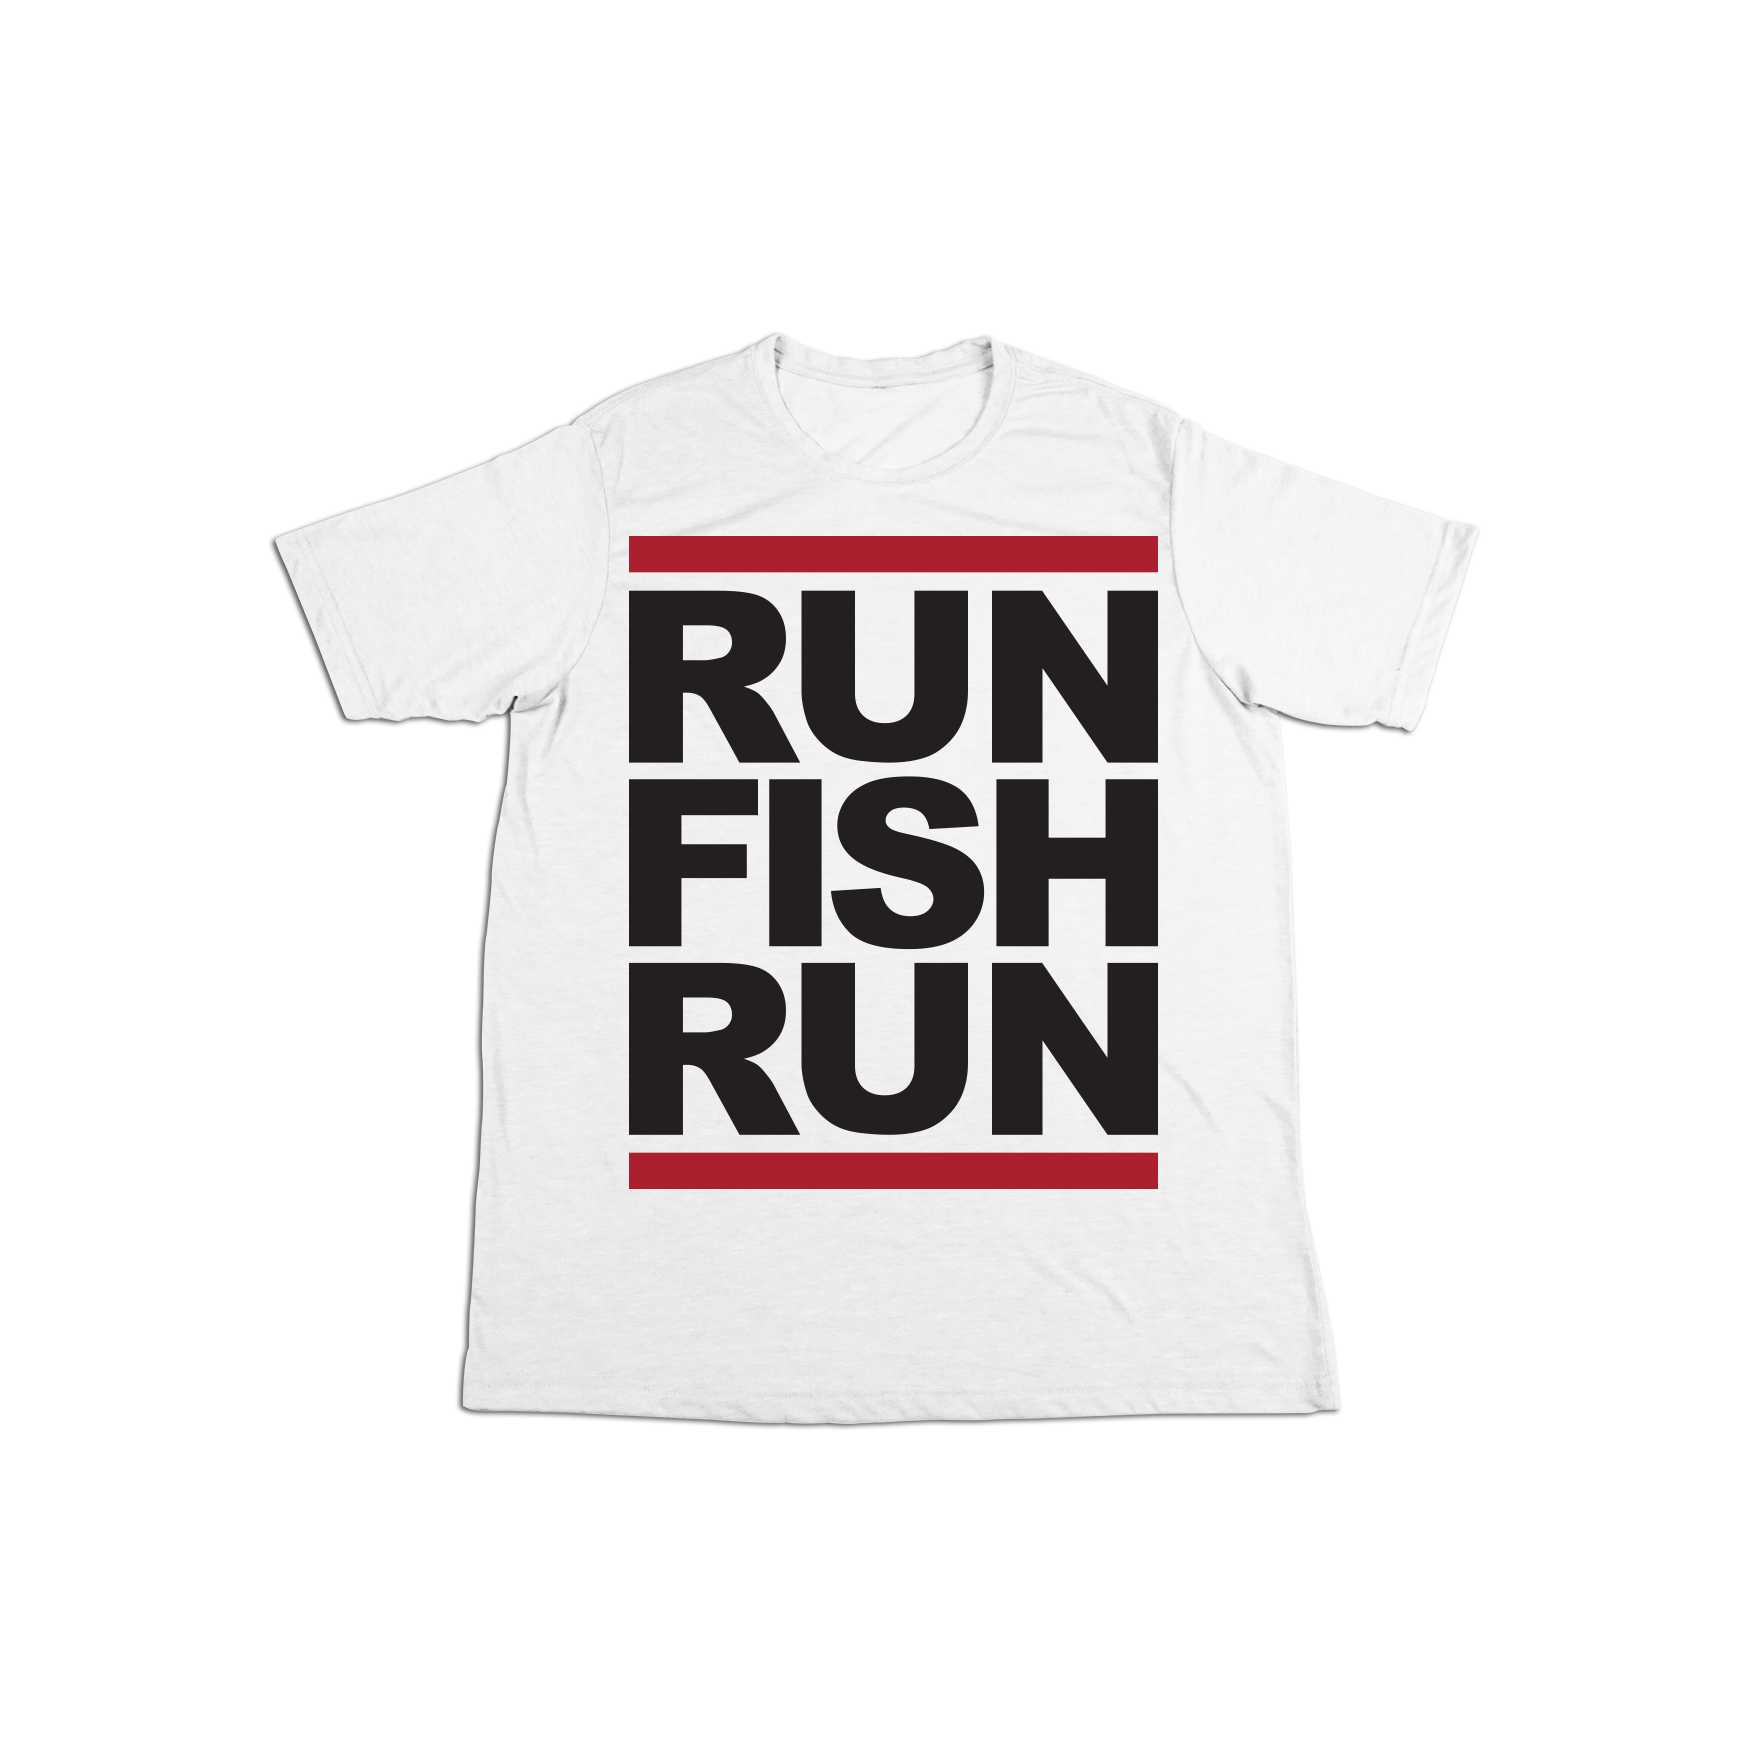 #RUNFISHRUN TODDLER Short Sleeve Shirt - Black - Hat Mount for GoPro